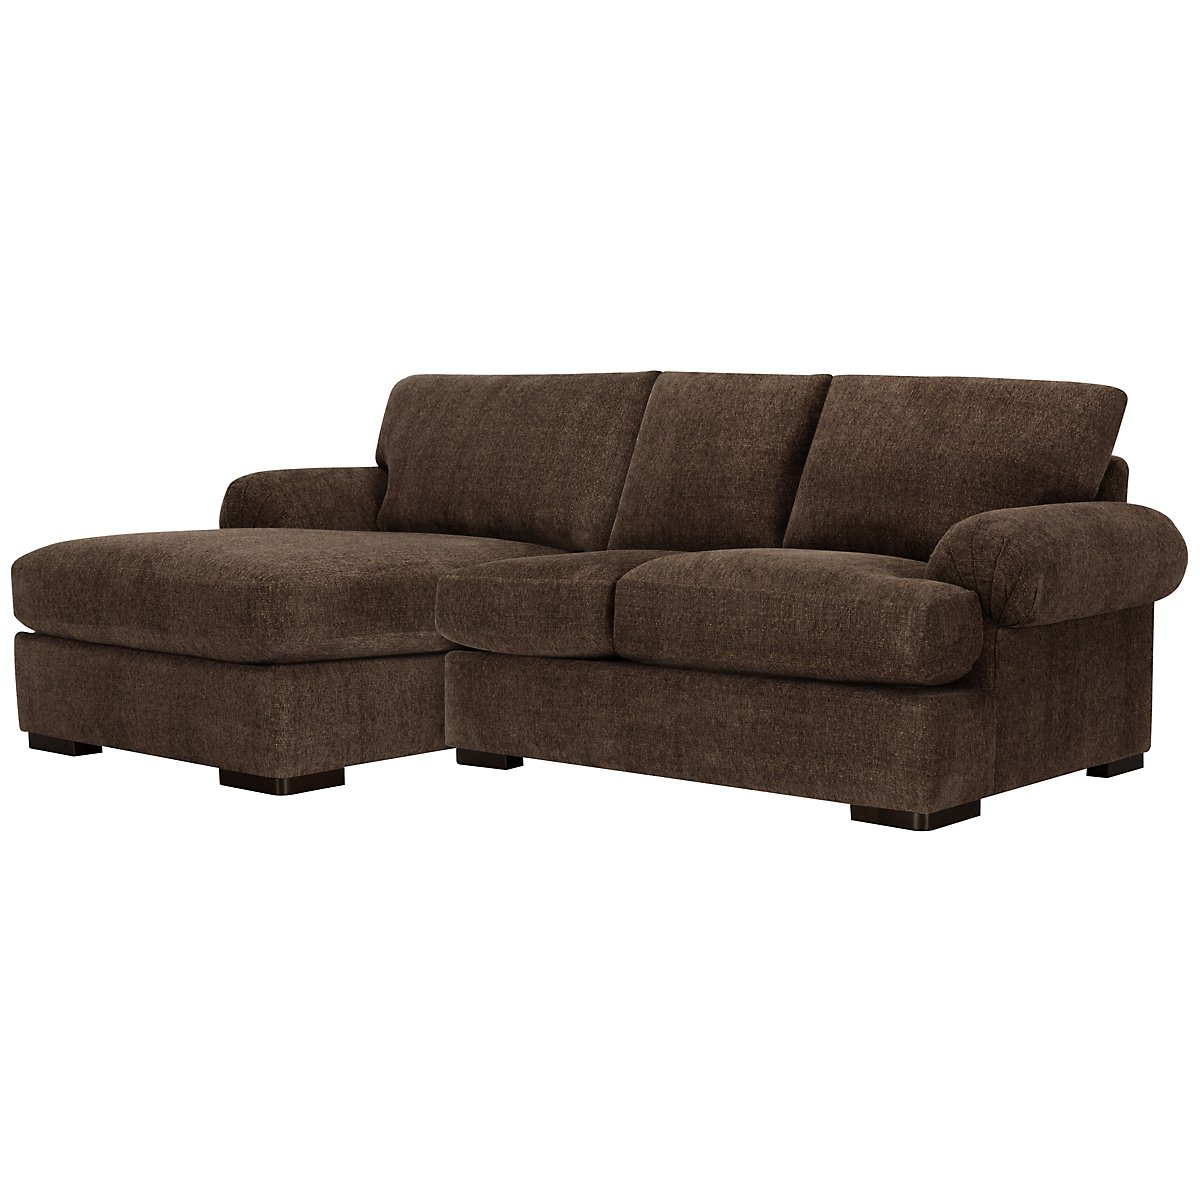 City Furniture Belair Dk Brown Microfiber Left Chaise